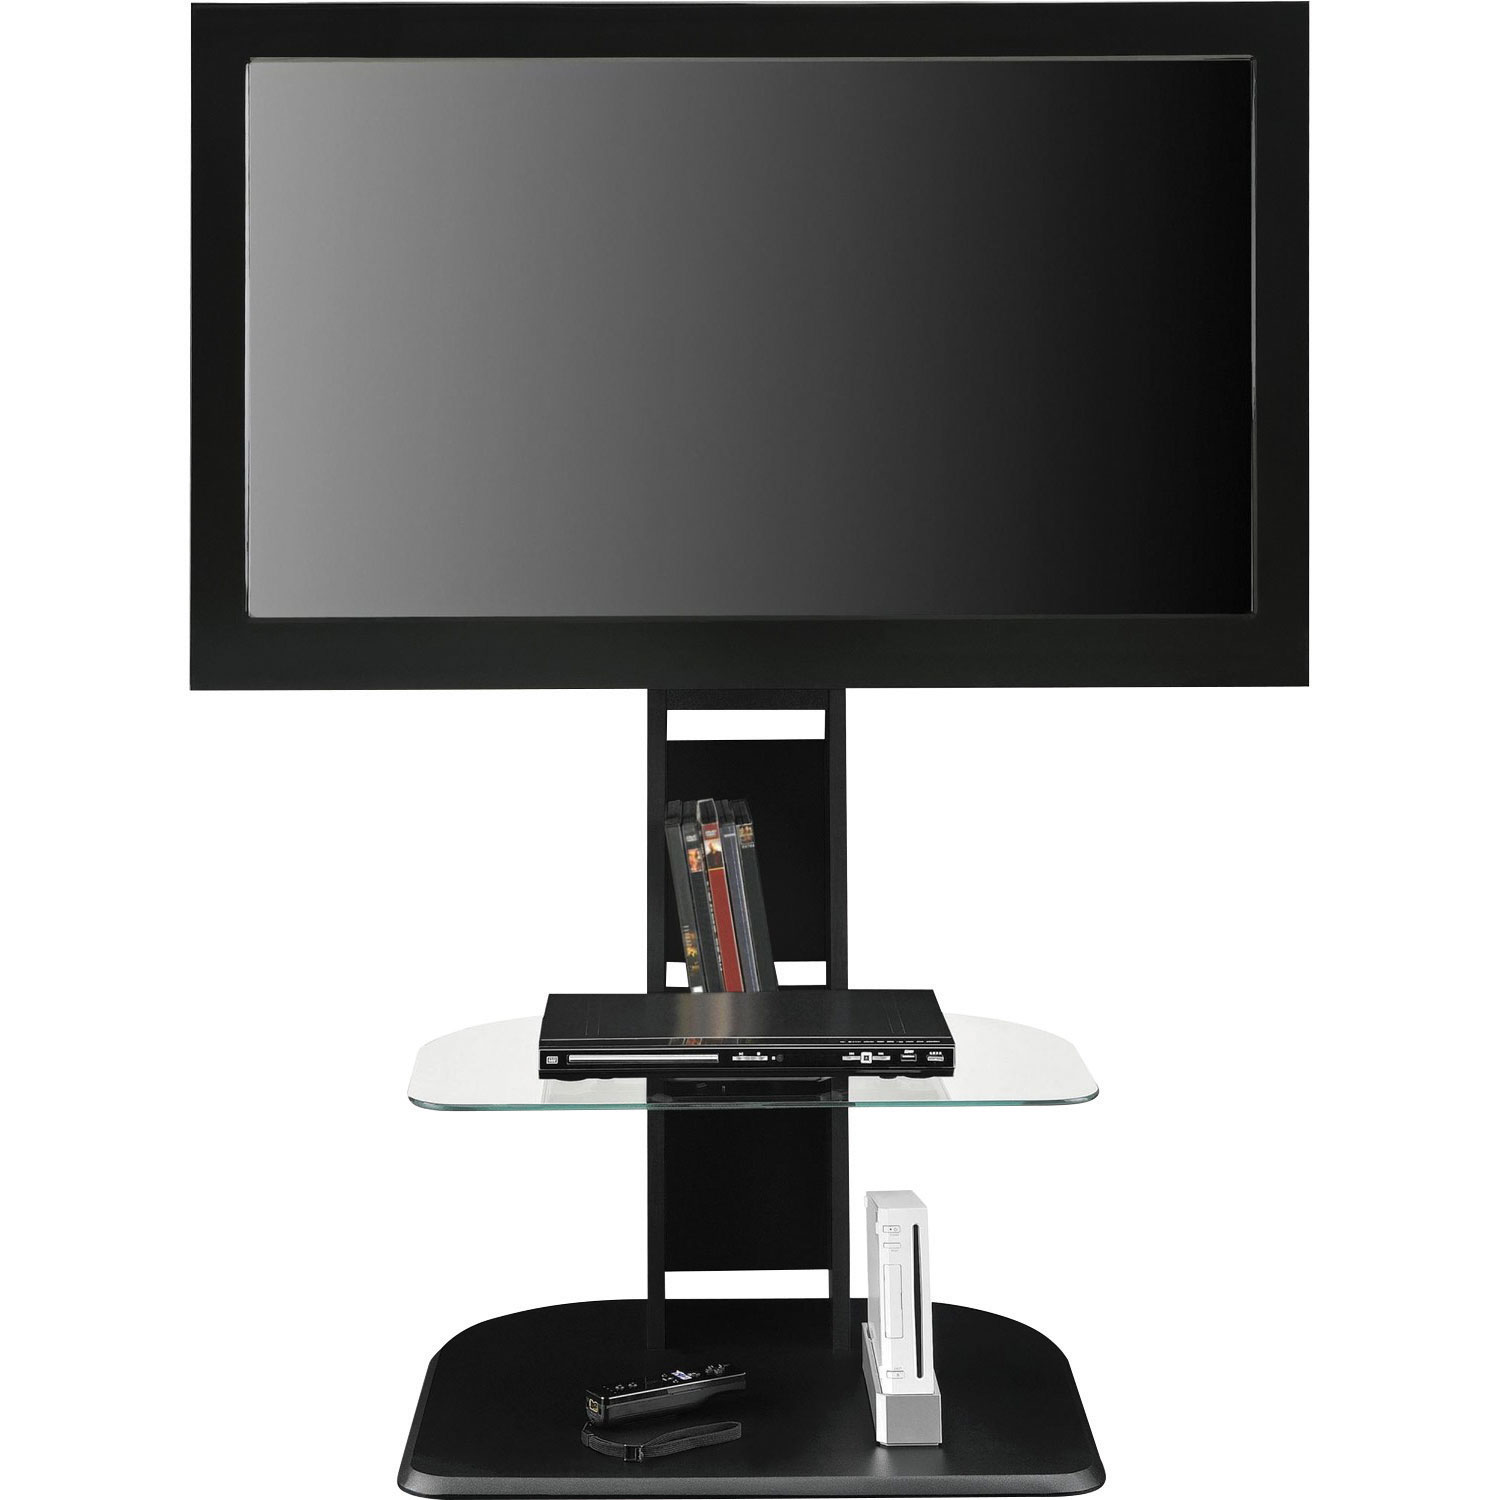 dorel galaxy  tv stand  black  tv stands  best buy canada -